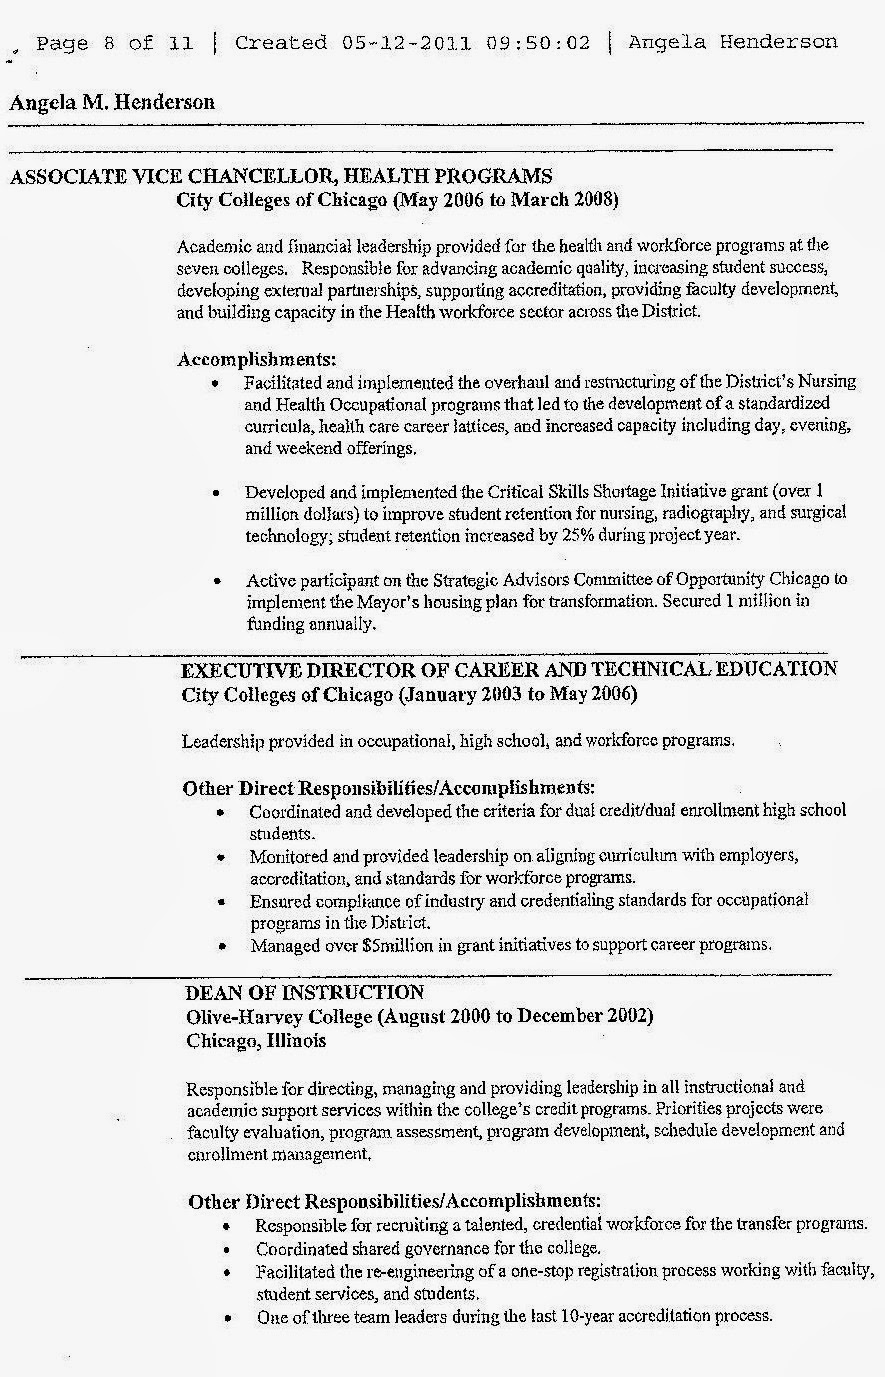 sample resume biostatistics